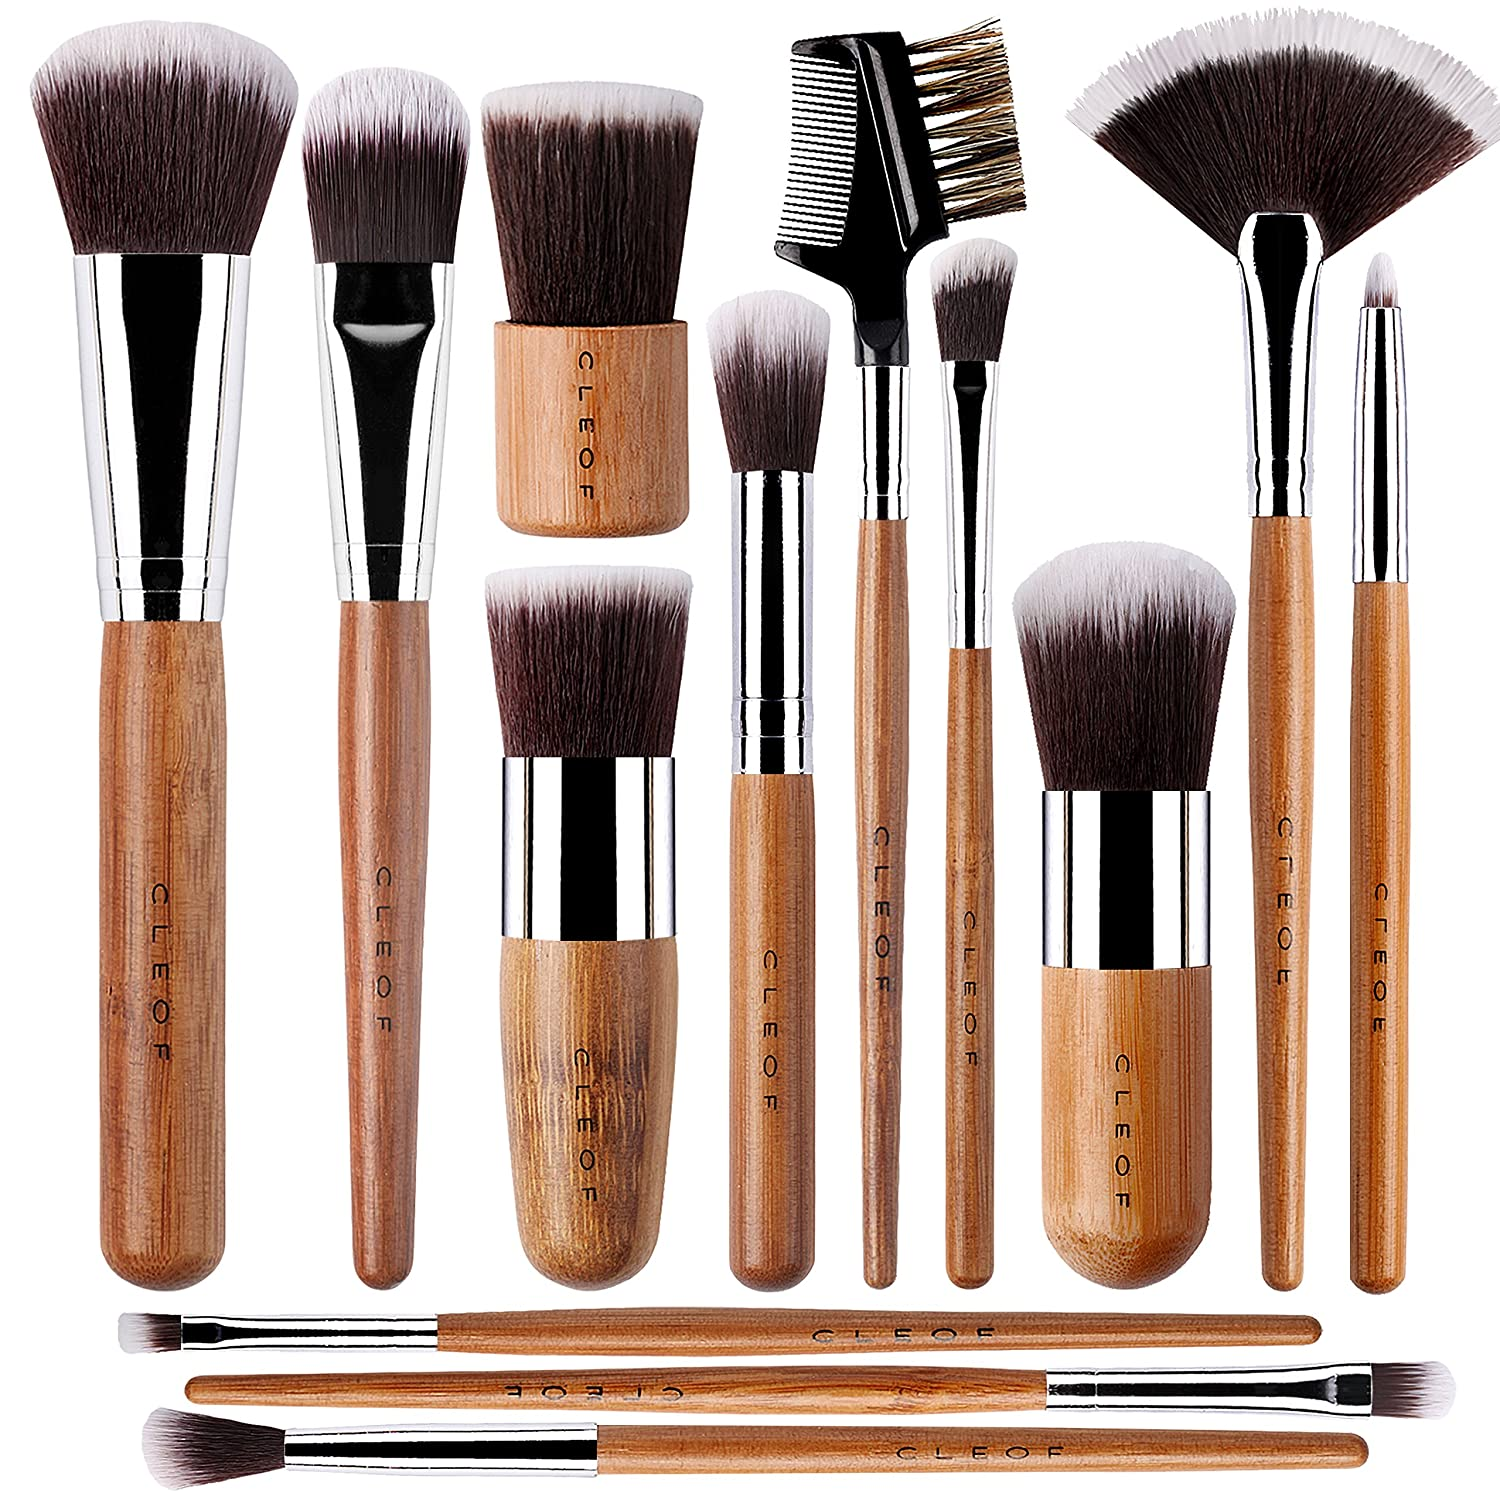 Vegan Valentine's Day Gifts: vegan bamboo makeup brush set